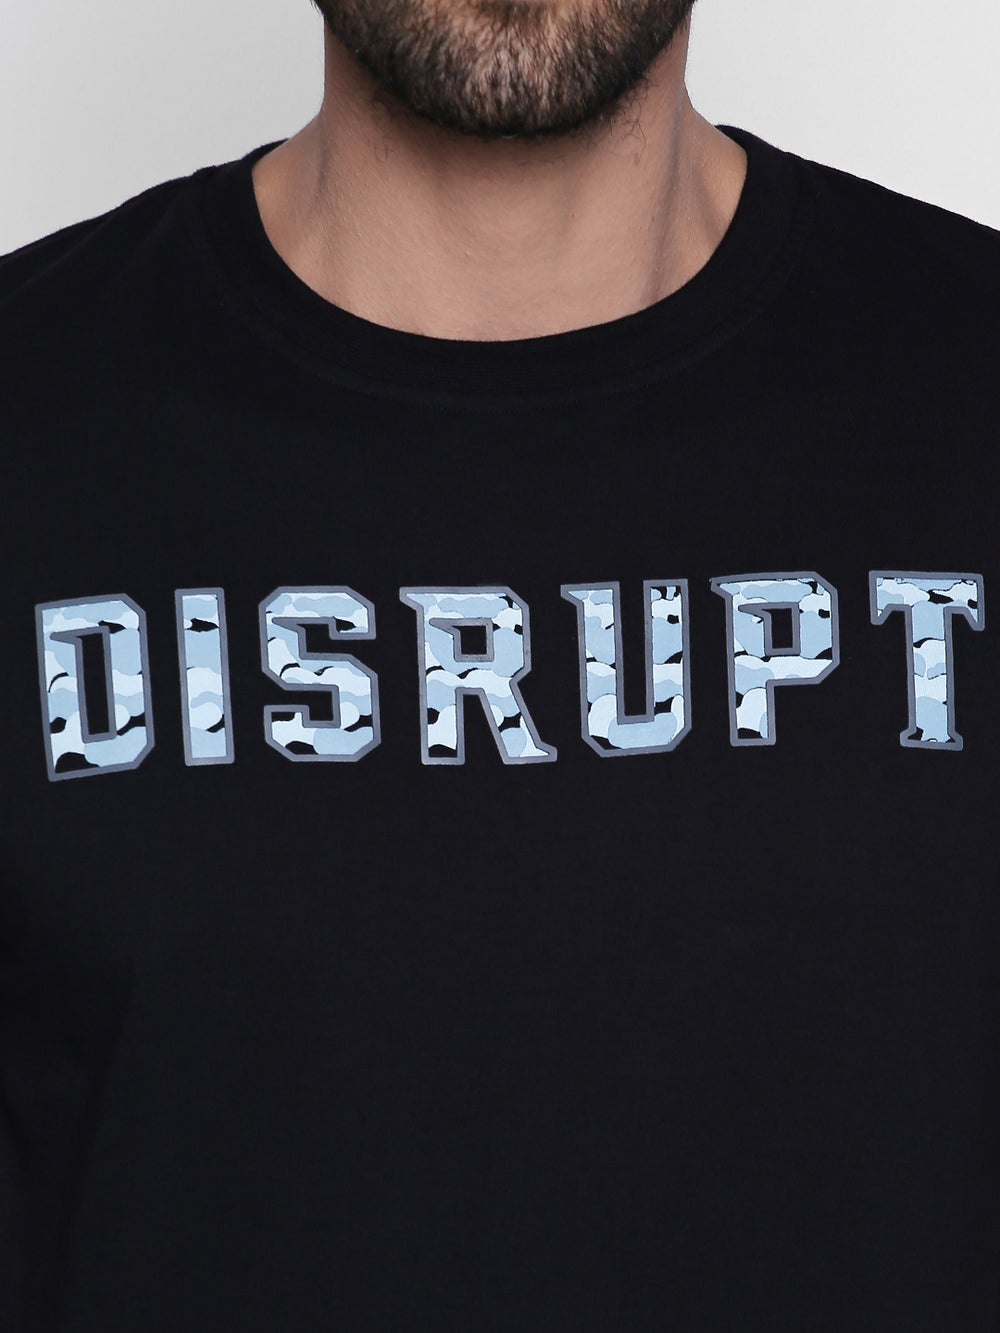 Disrupt Graphic Print Cotton Half Sleeve T-Shirt For Men's